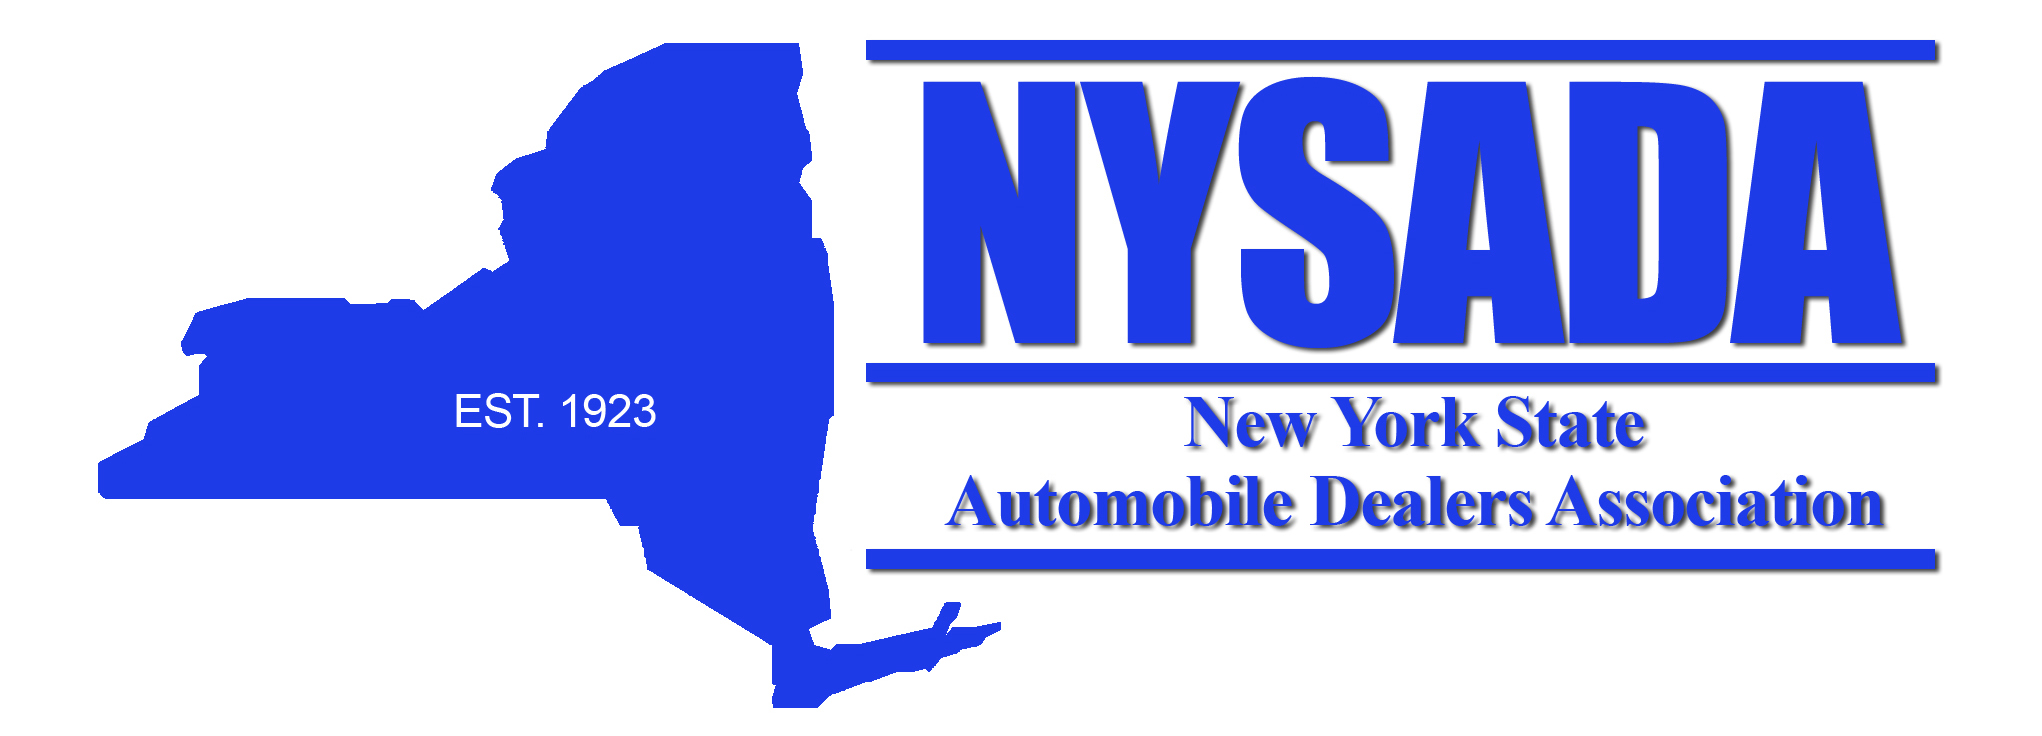 New York State Automobile Dealers Association Logo